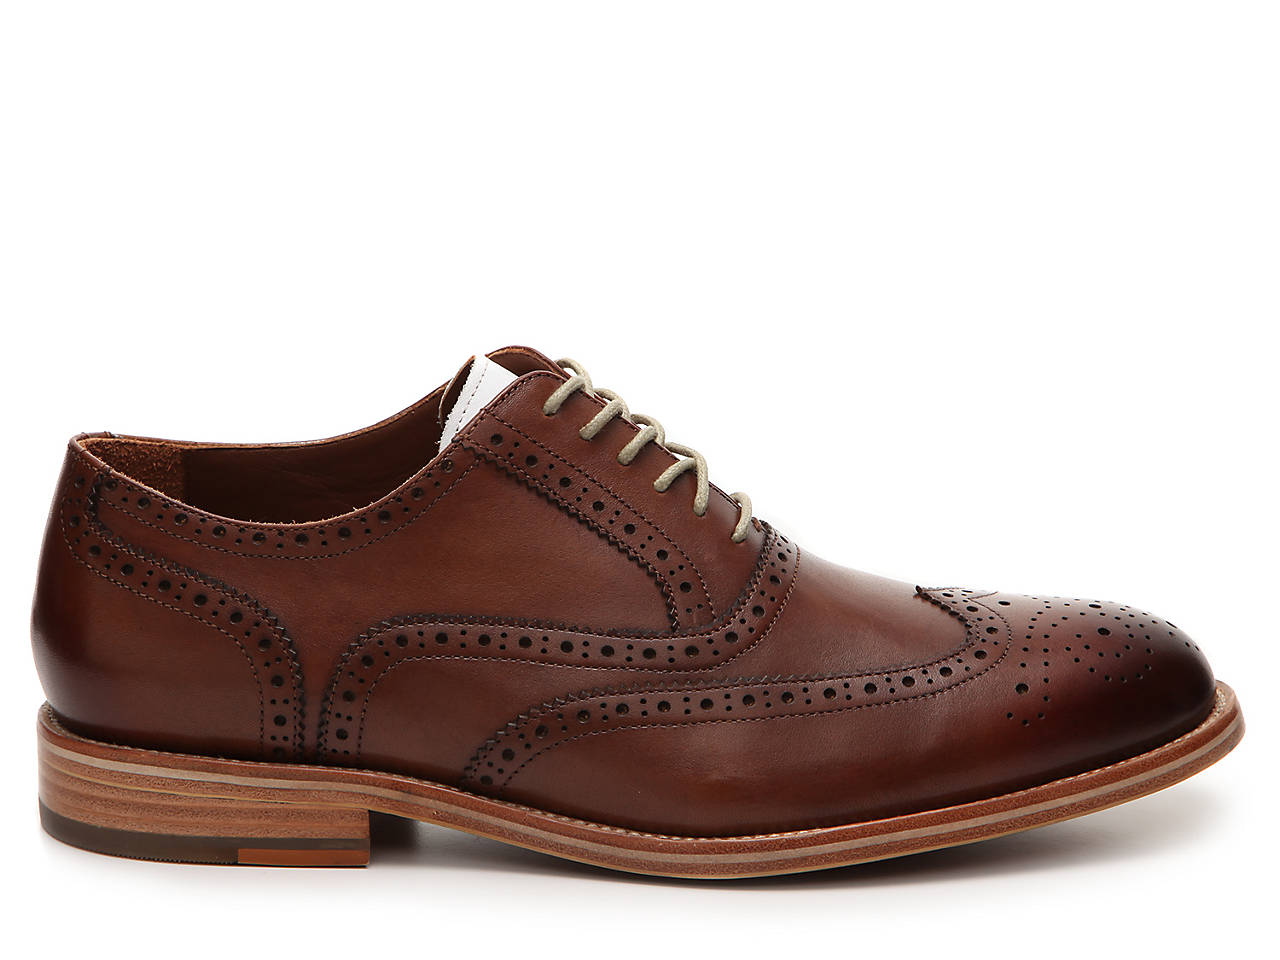 Warfield & Grand Collins Wingtip Oxford